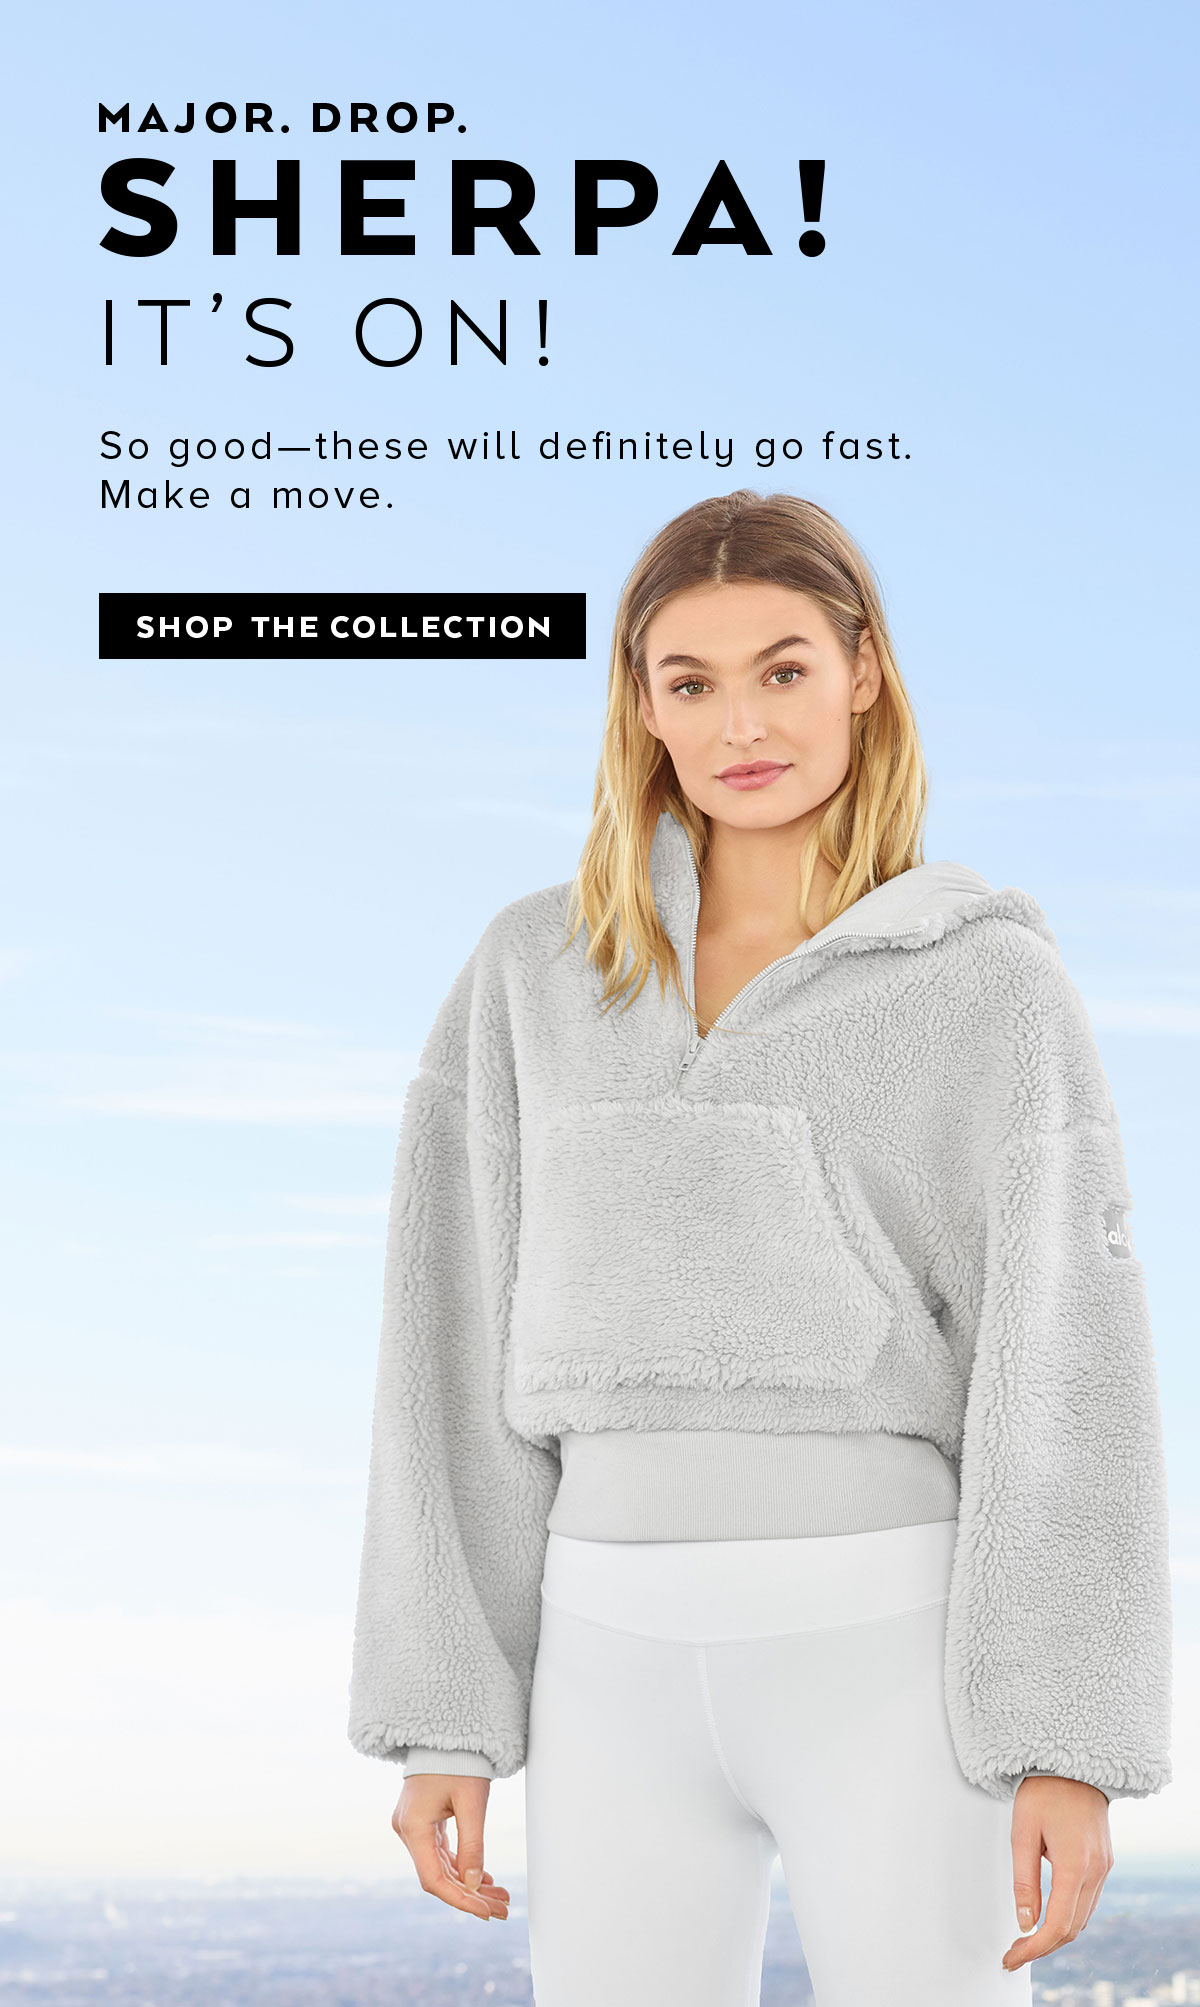 MAJOR DROP SHERPA! SHOP THE COLLECTION